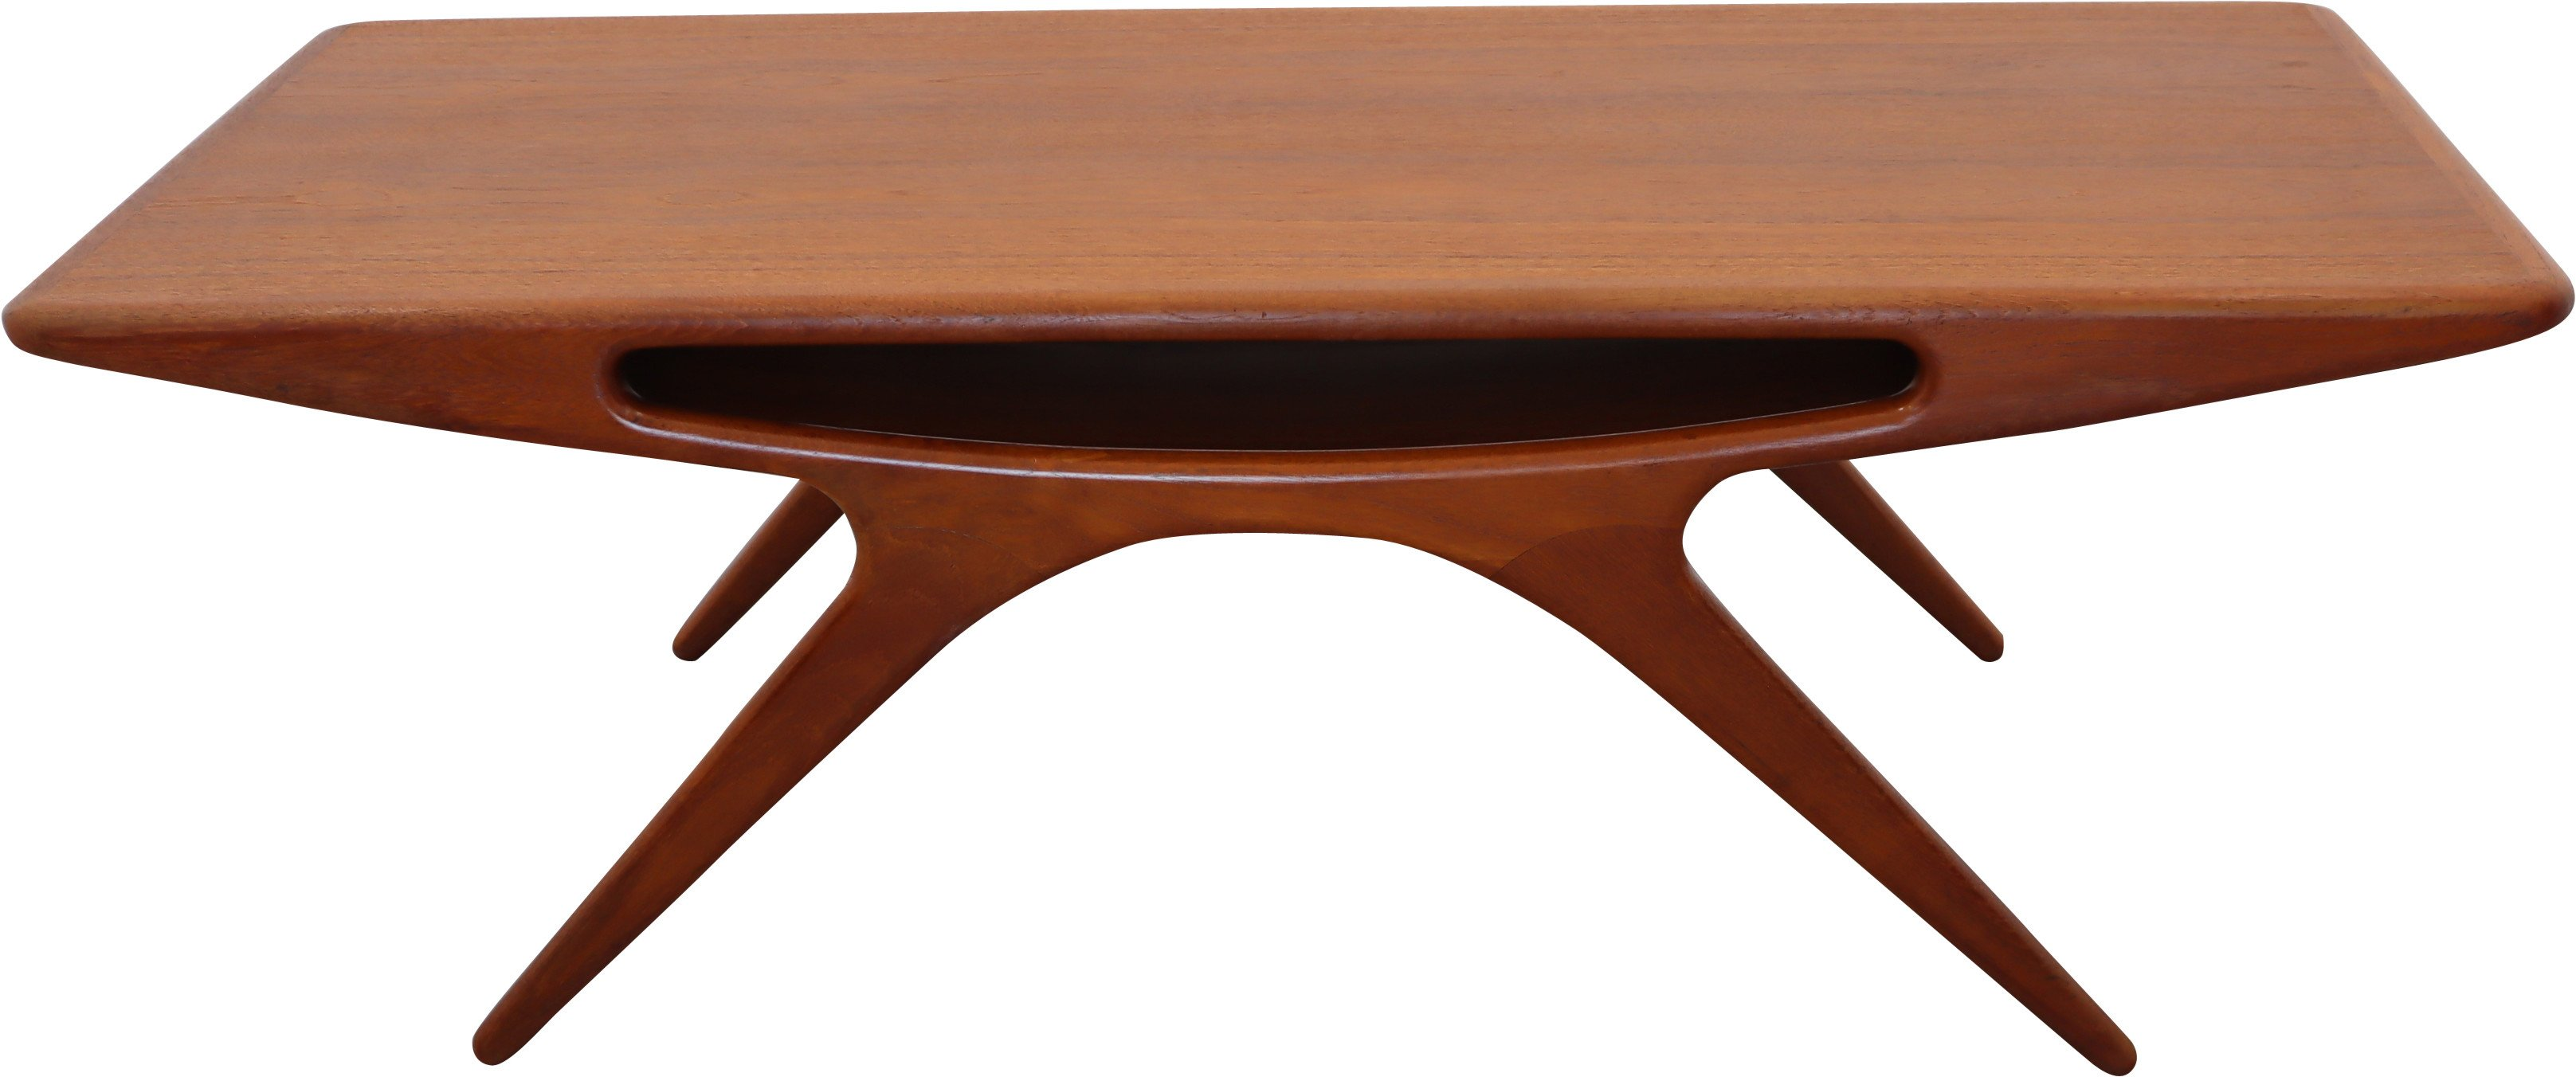 Coffee Table by J. Andersen, CFC Silkeborg, lata 60.